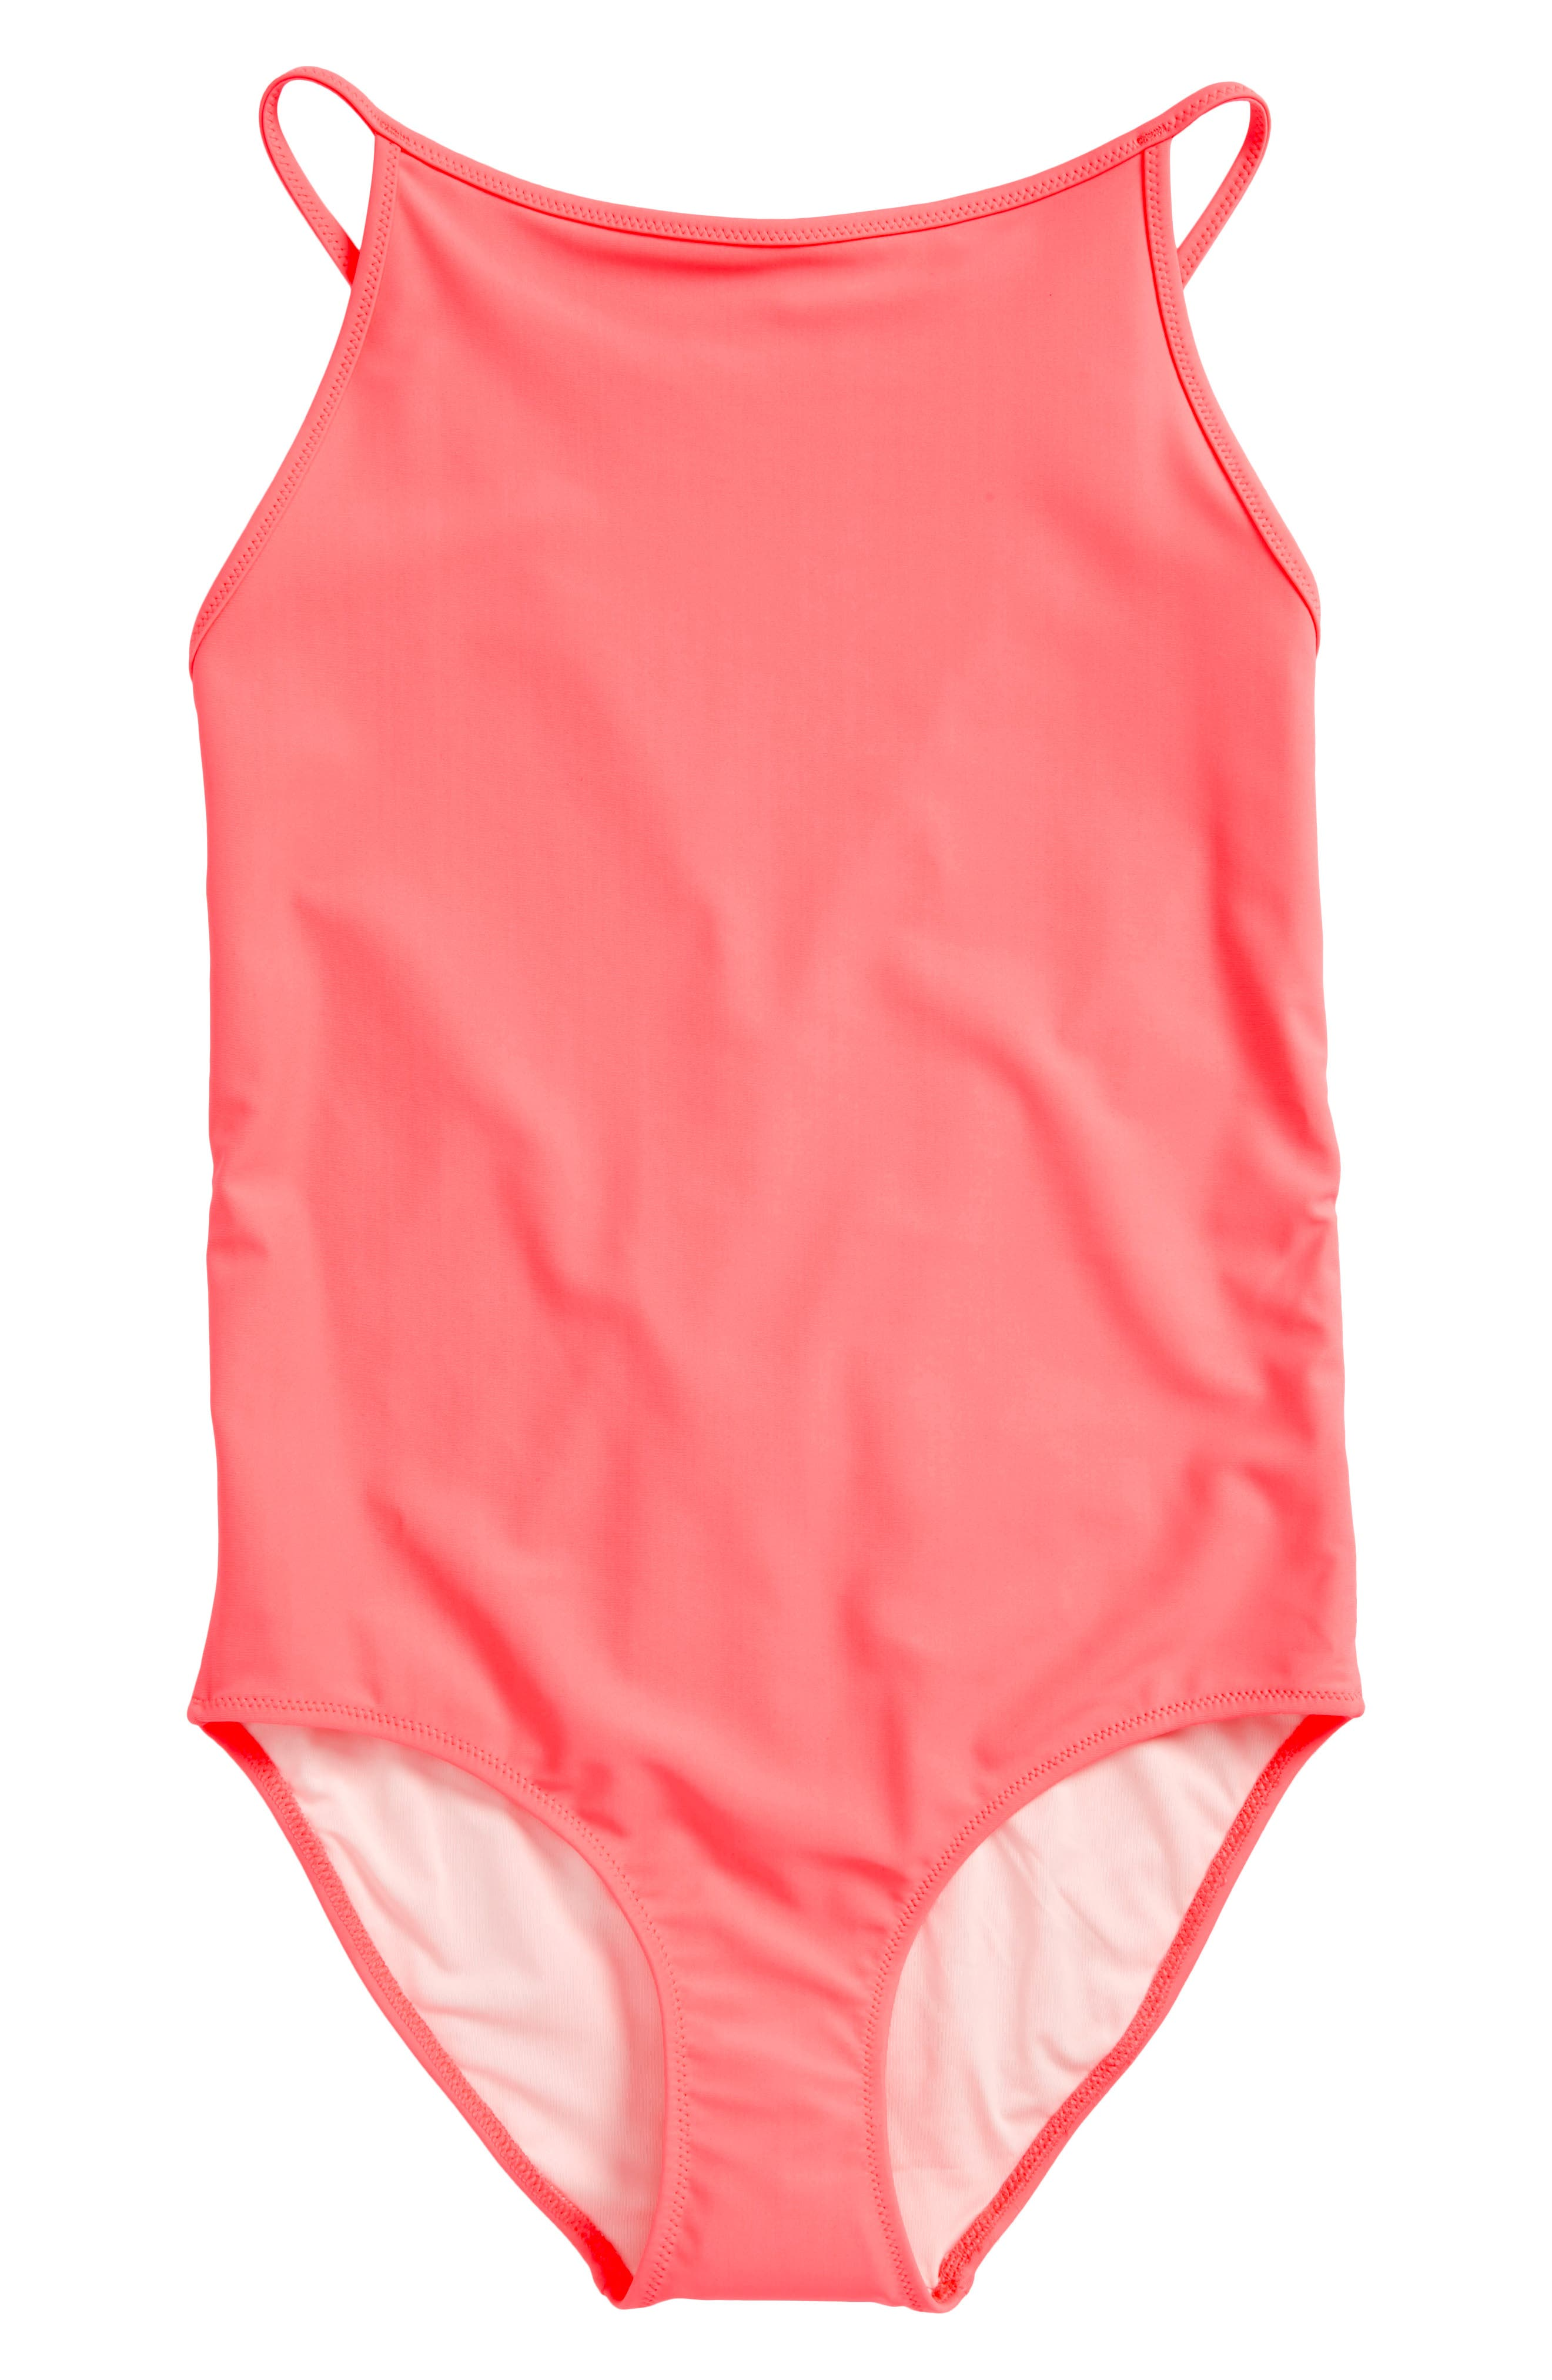 Sandine One-Piece Swimsuit,                         Main,                         color, Bright Coral